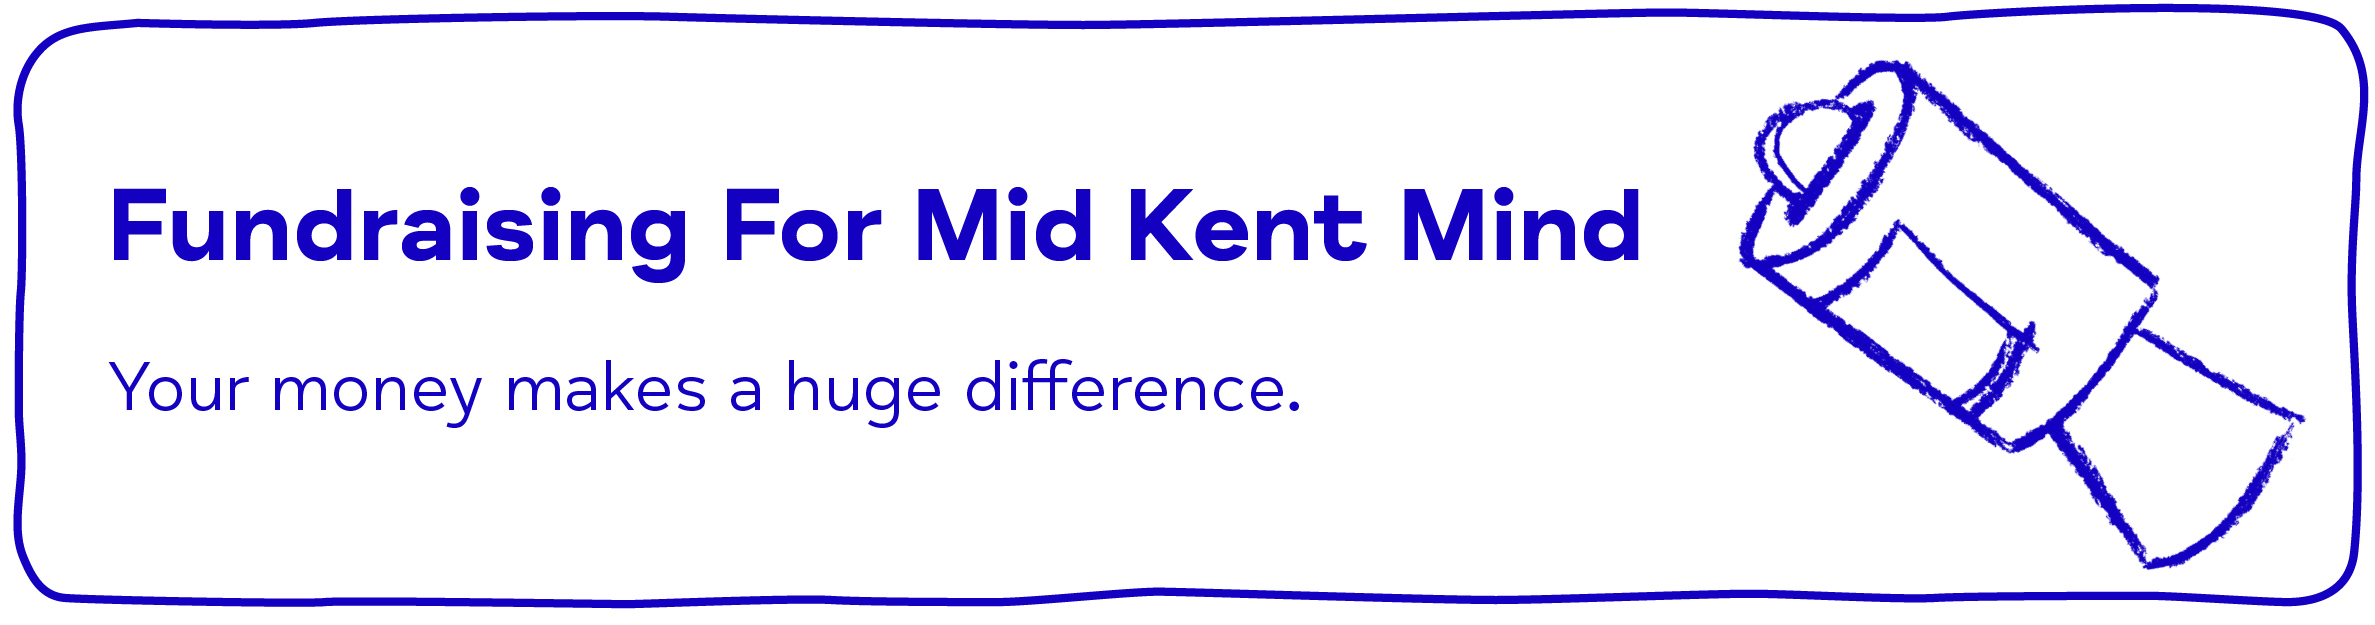 Fundraising For Mid Kent Mind. Your money makes a huge difference.